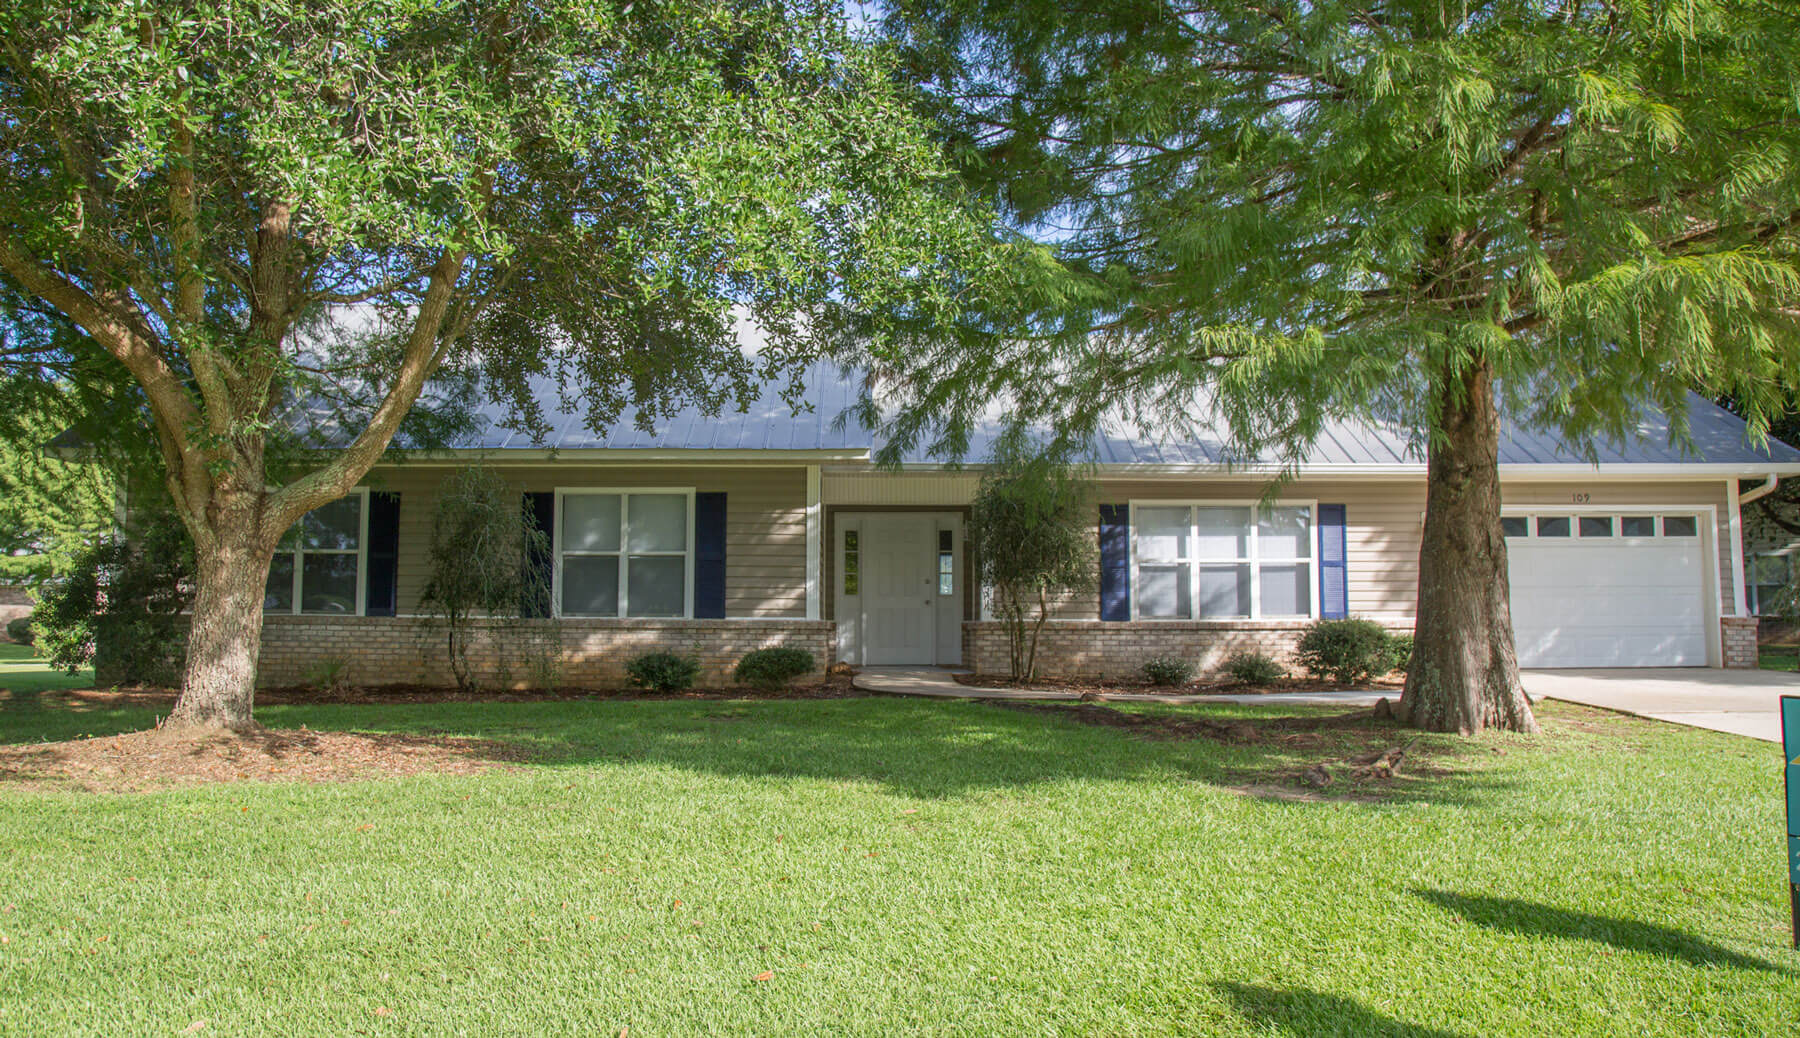 109 Summerfield - South Pointe Rental Homes